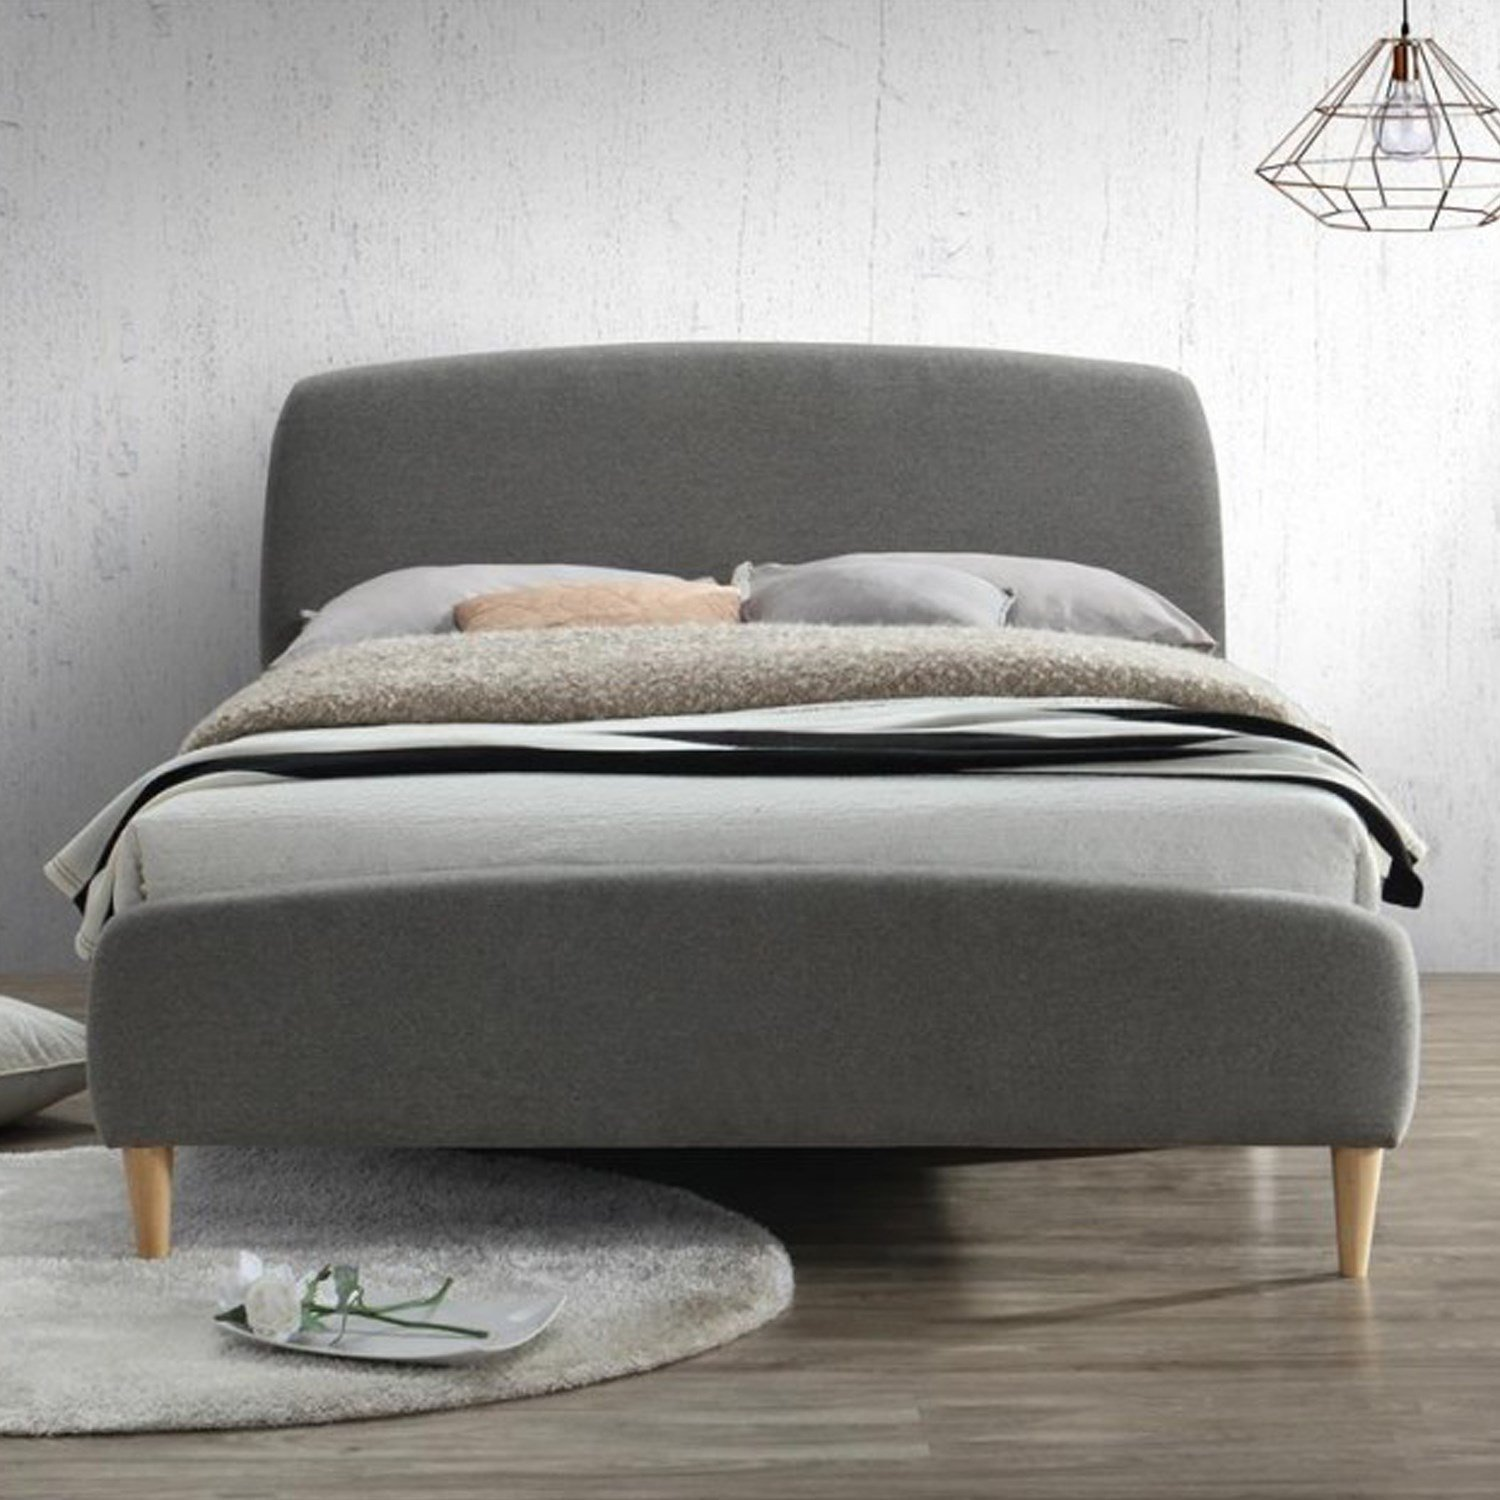 Best Birlea Quebec Upholstered Grey Small Double Bed Furniture123 With Pictures